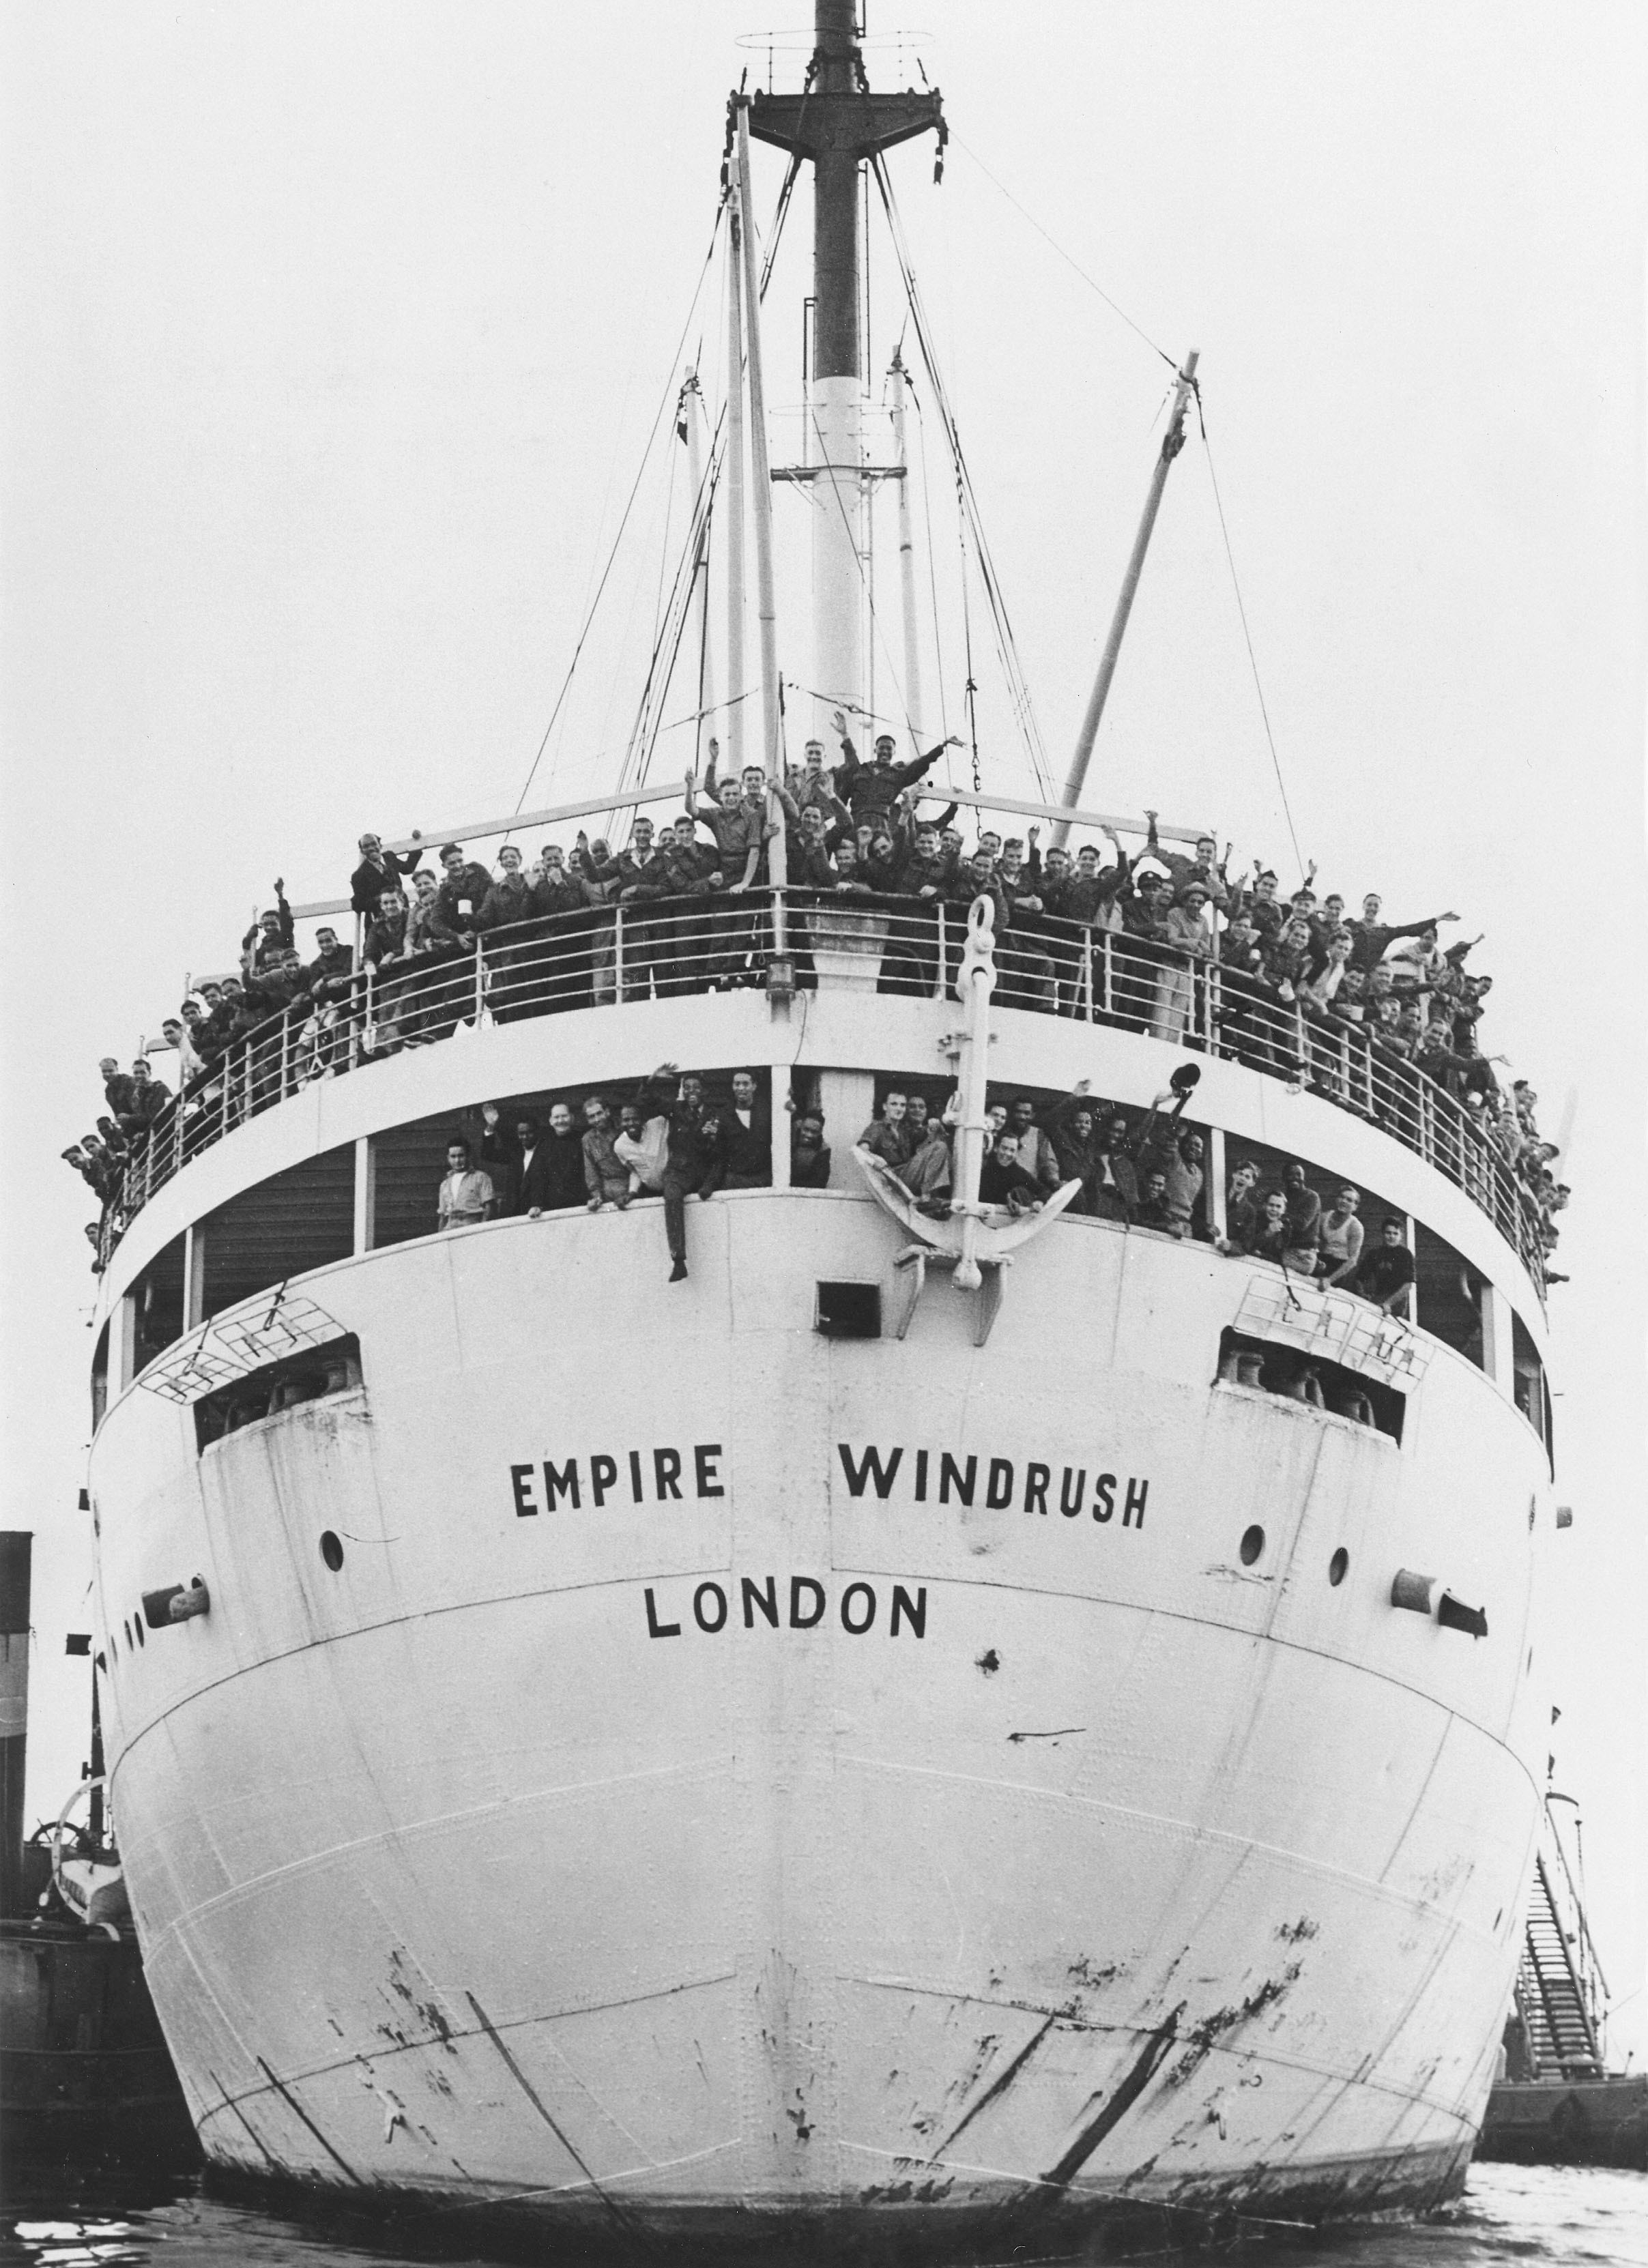 One of the first Windrush ships arriving from Jamaica in 1948